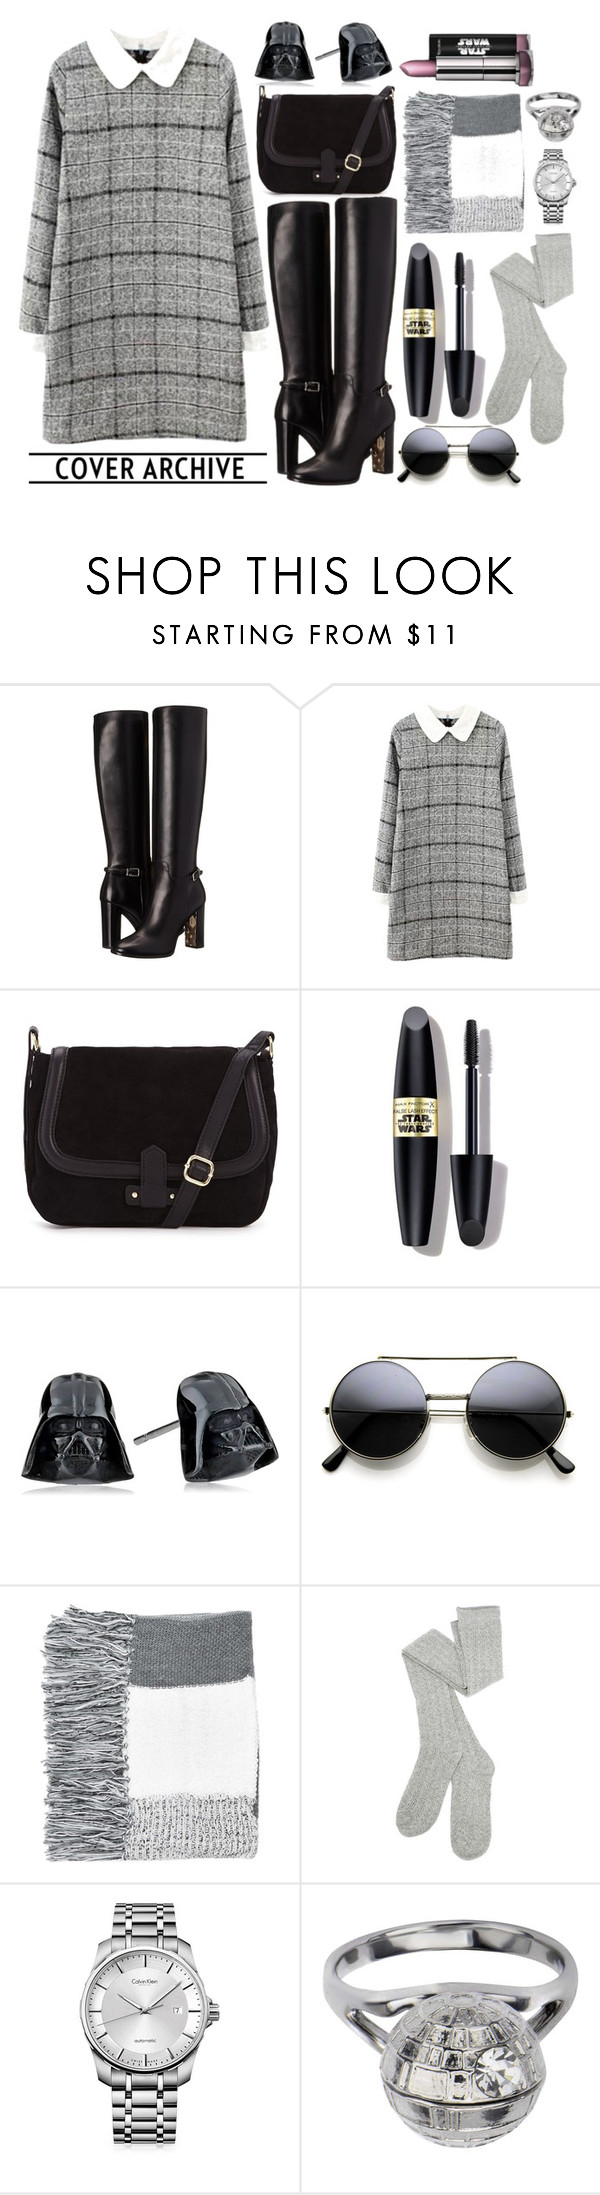 """Untitled #78"" by cqd2015 ❤ liked on Polyvore featuring Burberry, Max Factor, Topshop, Calvin Klein, women's clothing, women, female, woman, misses and juniors"